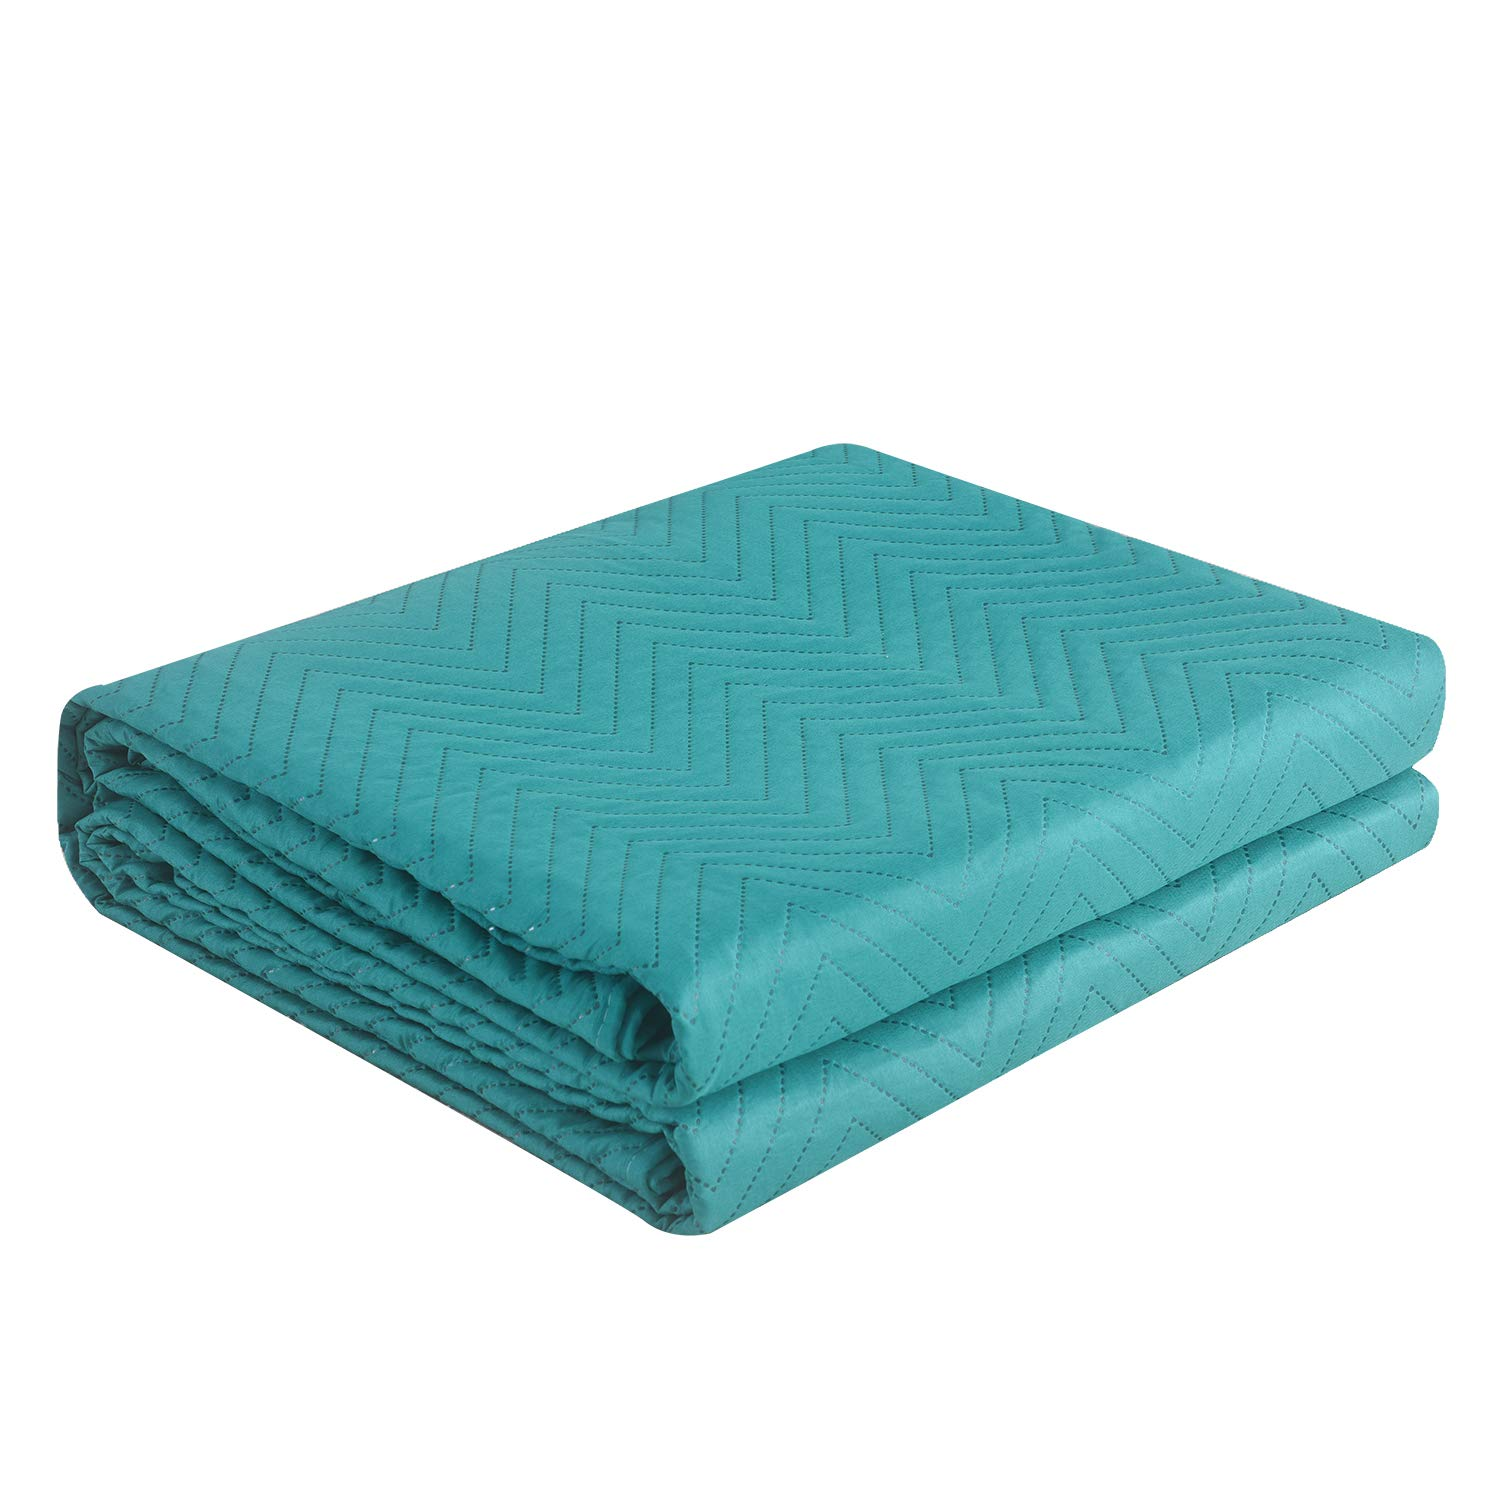 LITHER bedspreads Queen Size Oversized Quilt Coverlet Waved Pattern Solid Color(Teal, 86x96inch) Machine Washable